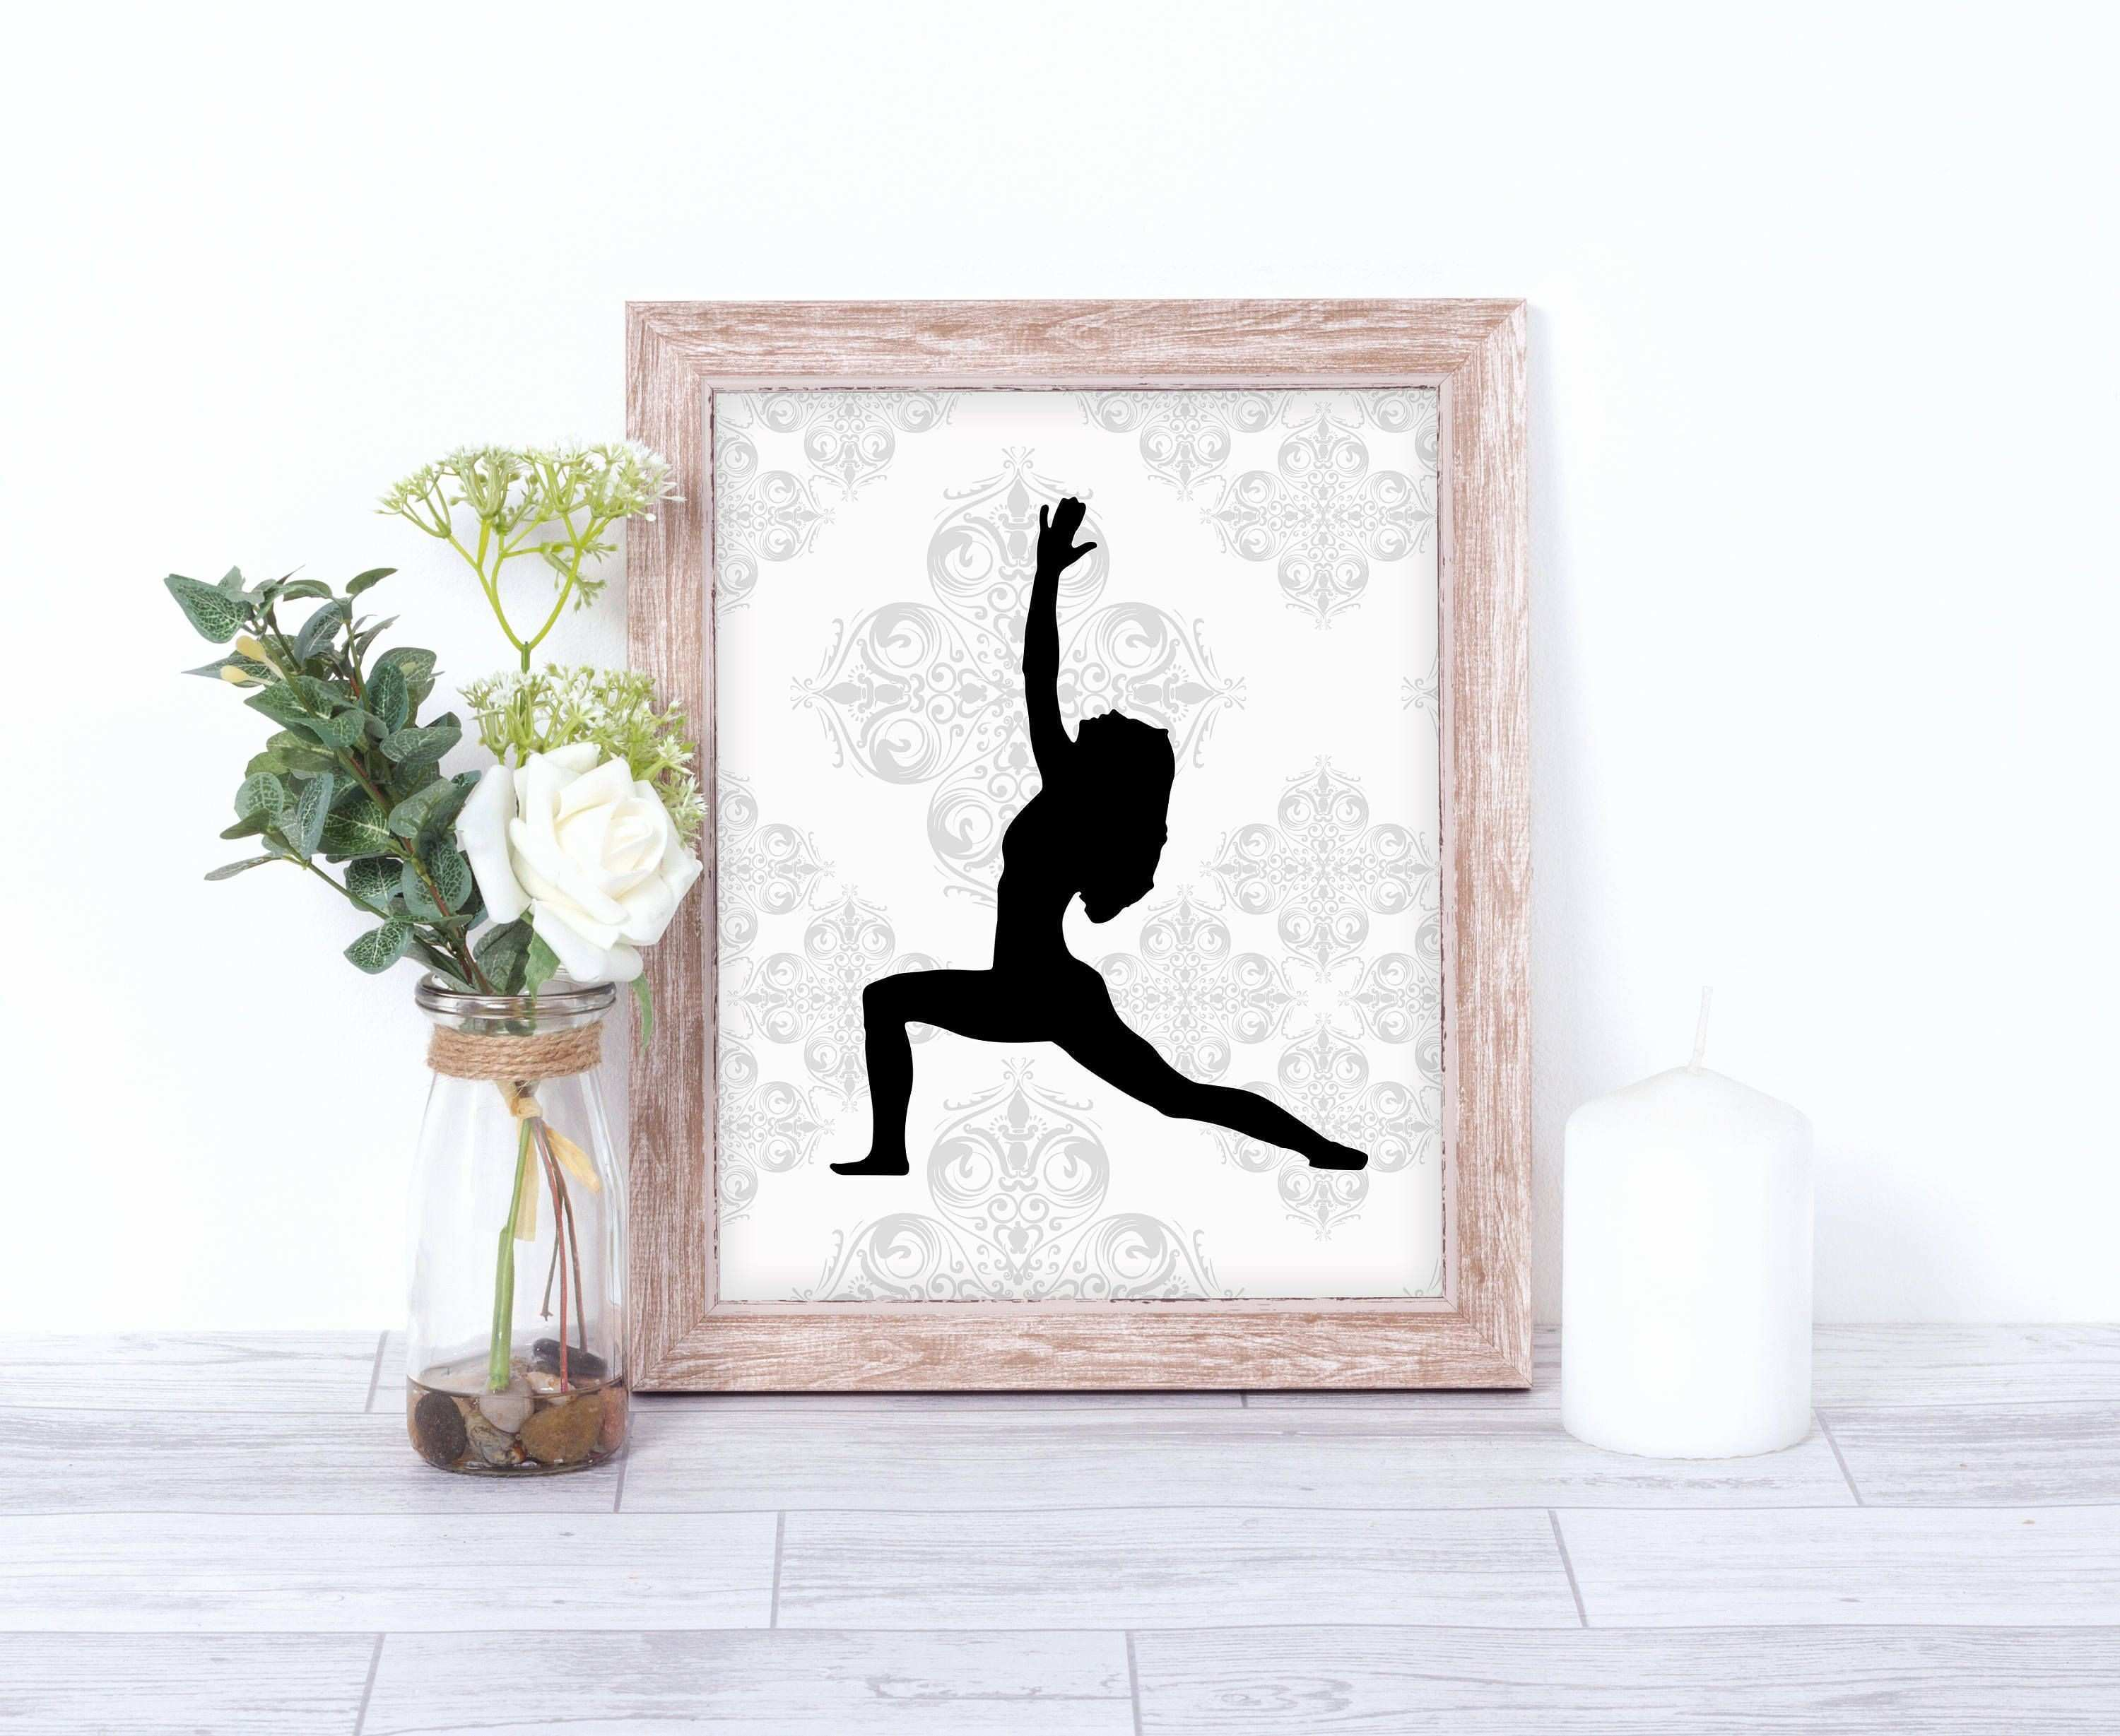 photograph regarding Ballerina Silhouette Printable known as Absolutely free Obtain Graphic Remarkable Ballerina Wall Artwork 650*533